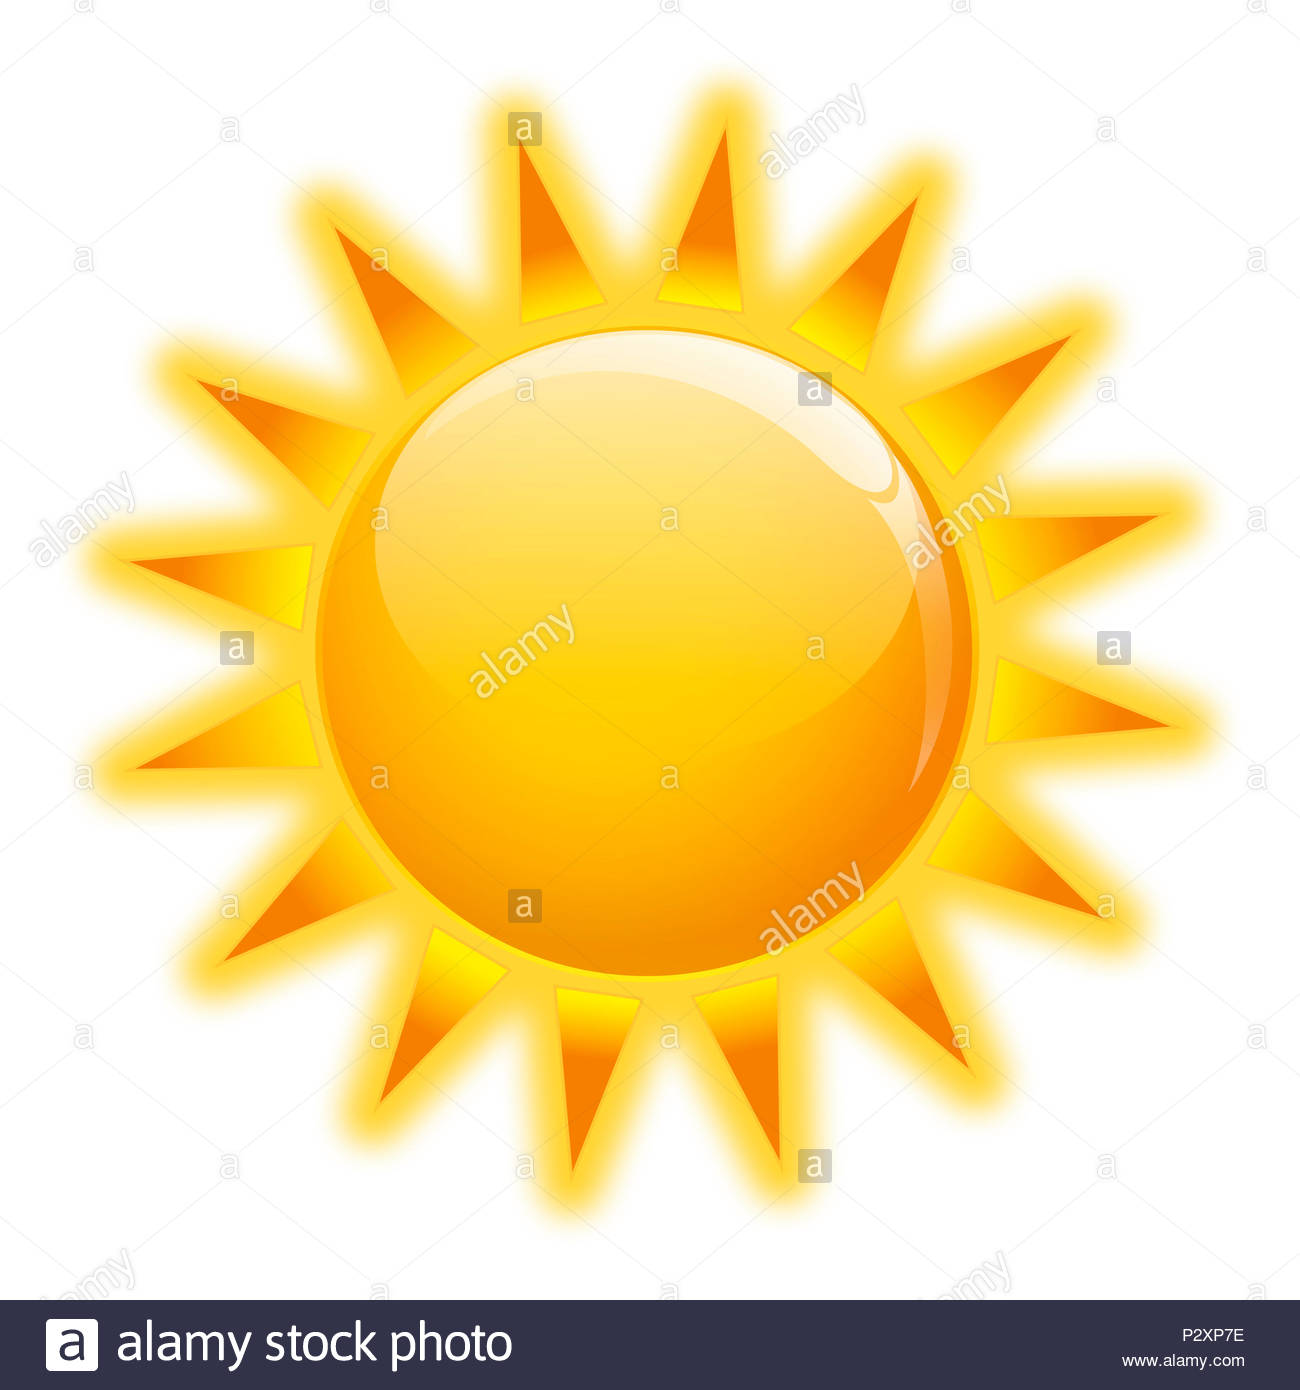 Hot Sun Clipart Stock Photos & Hot Sun Clipart Stock Images.